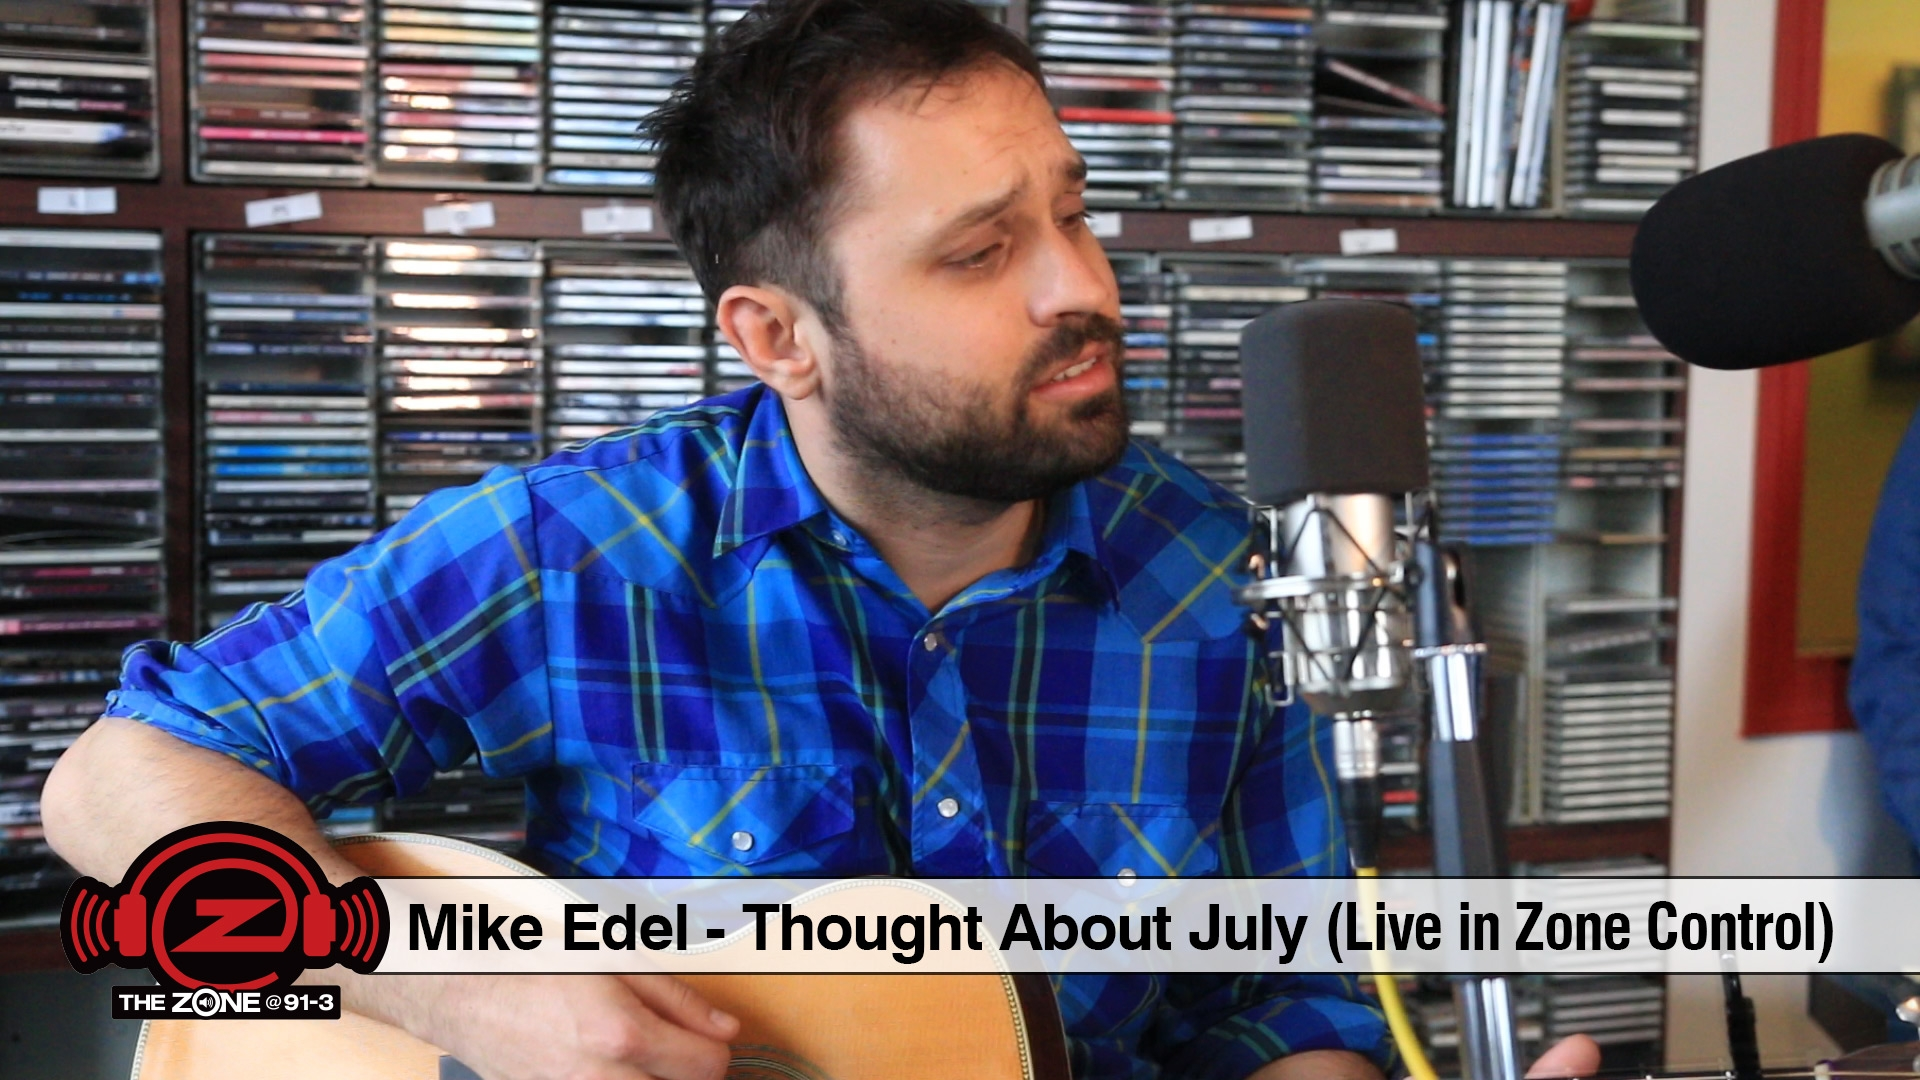 Mike Edel :: Thought About July (Live in Zone Control)